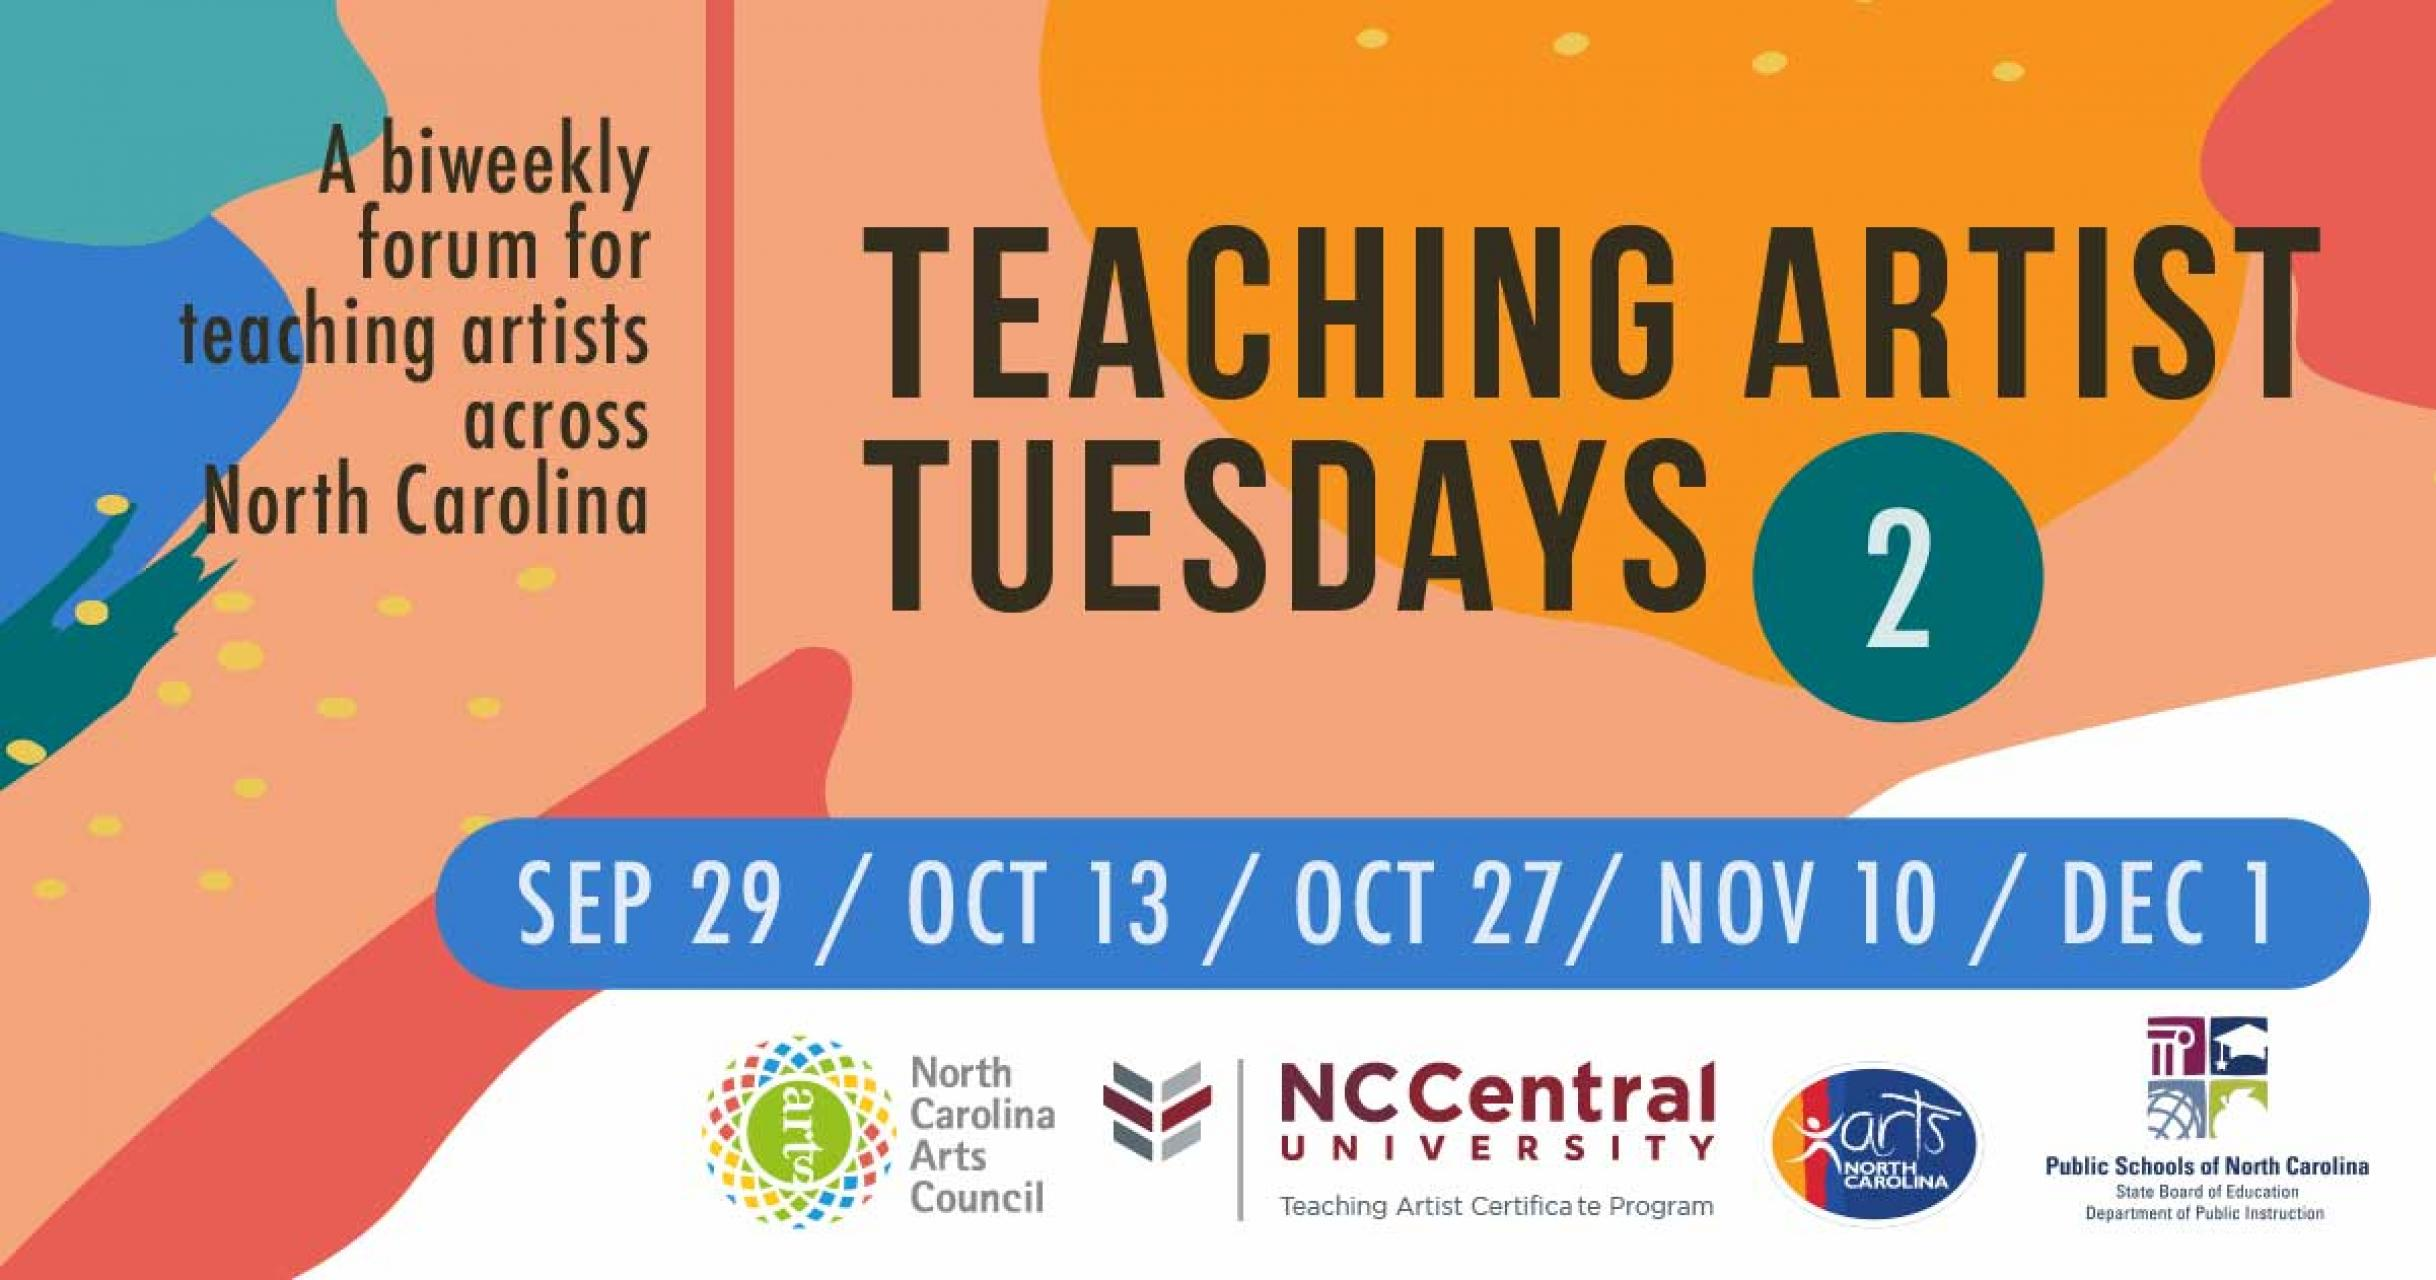 Teaching Artist Tuesdays